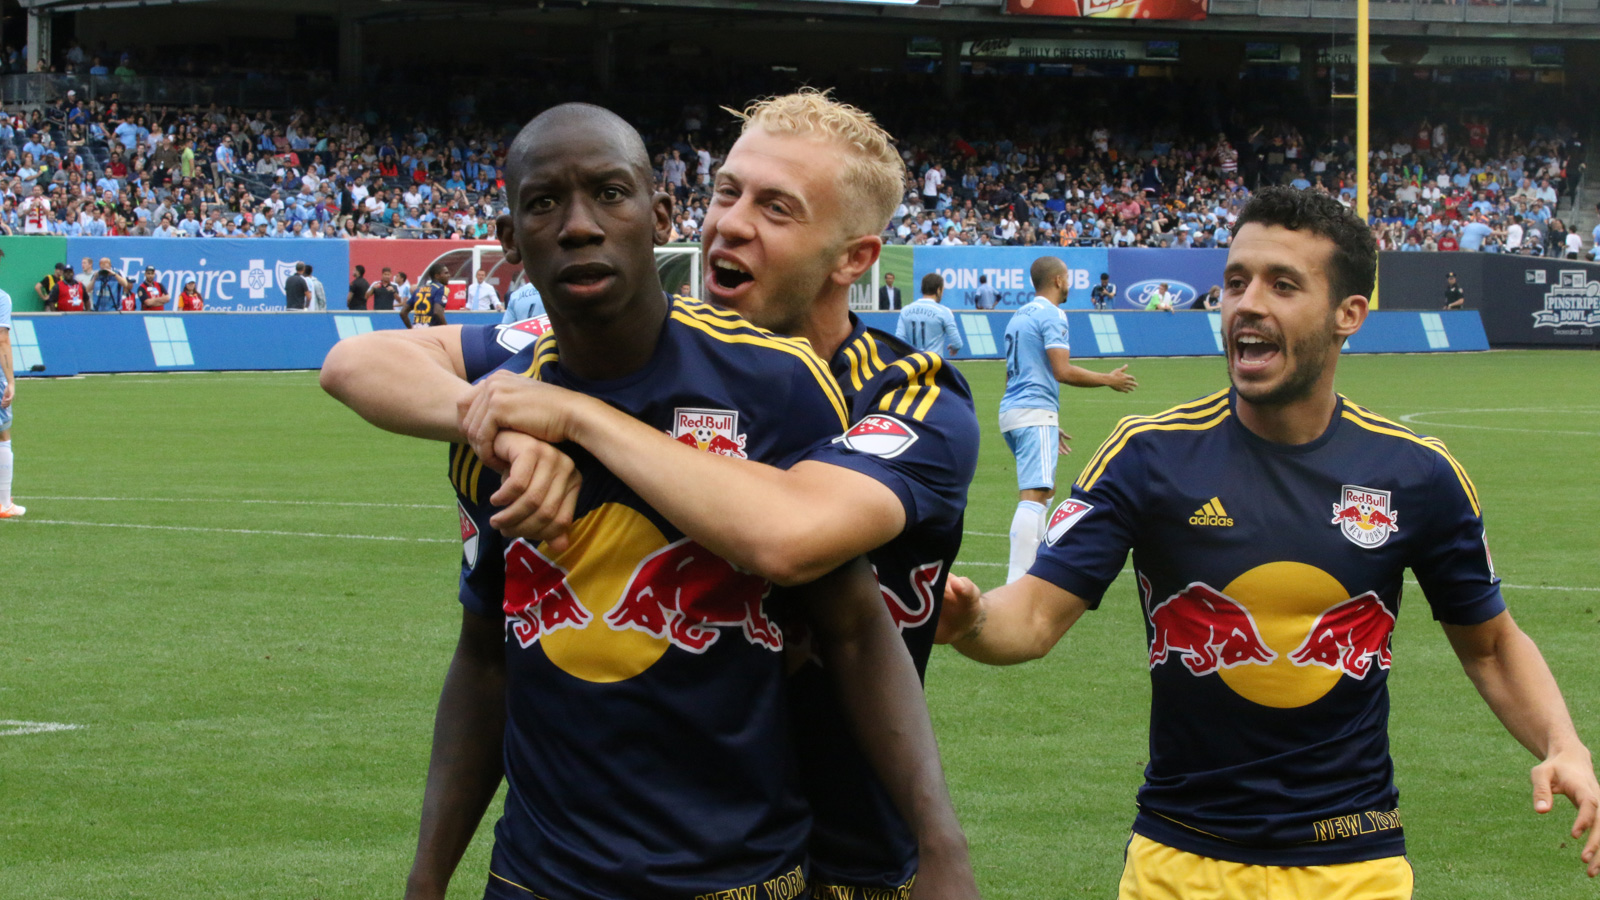 New York Red Bulls striker Bradley Wright-Phillips (left) celebrates with fellow striker Mike Grella (middle) and midfielder Felipe after scoring the Red Bulls' first goal of the match, which tied the game less than two minutes into the second half.